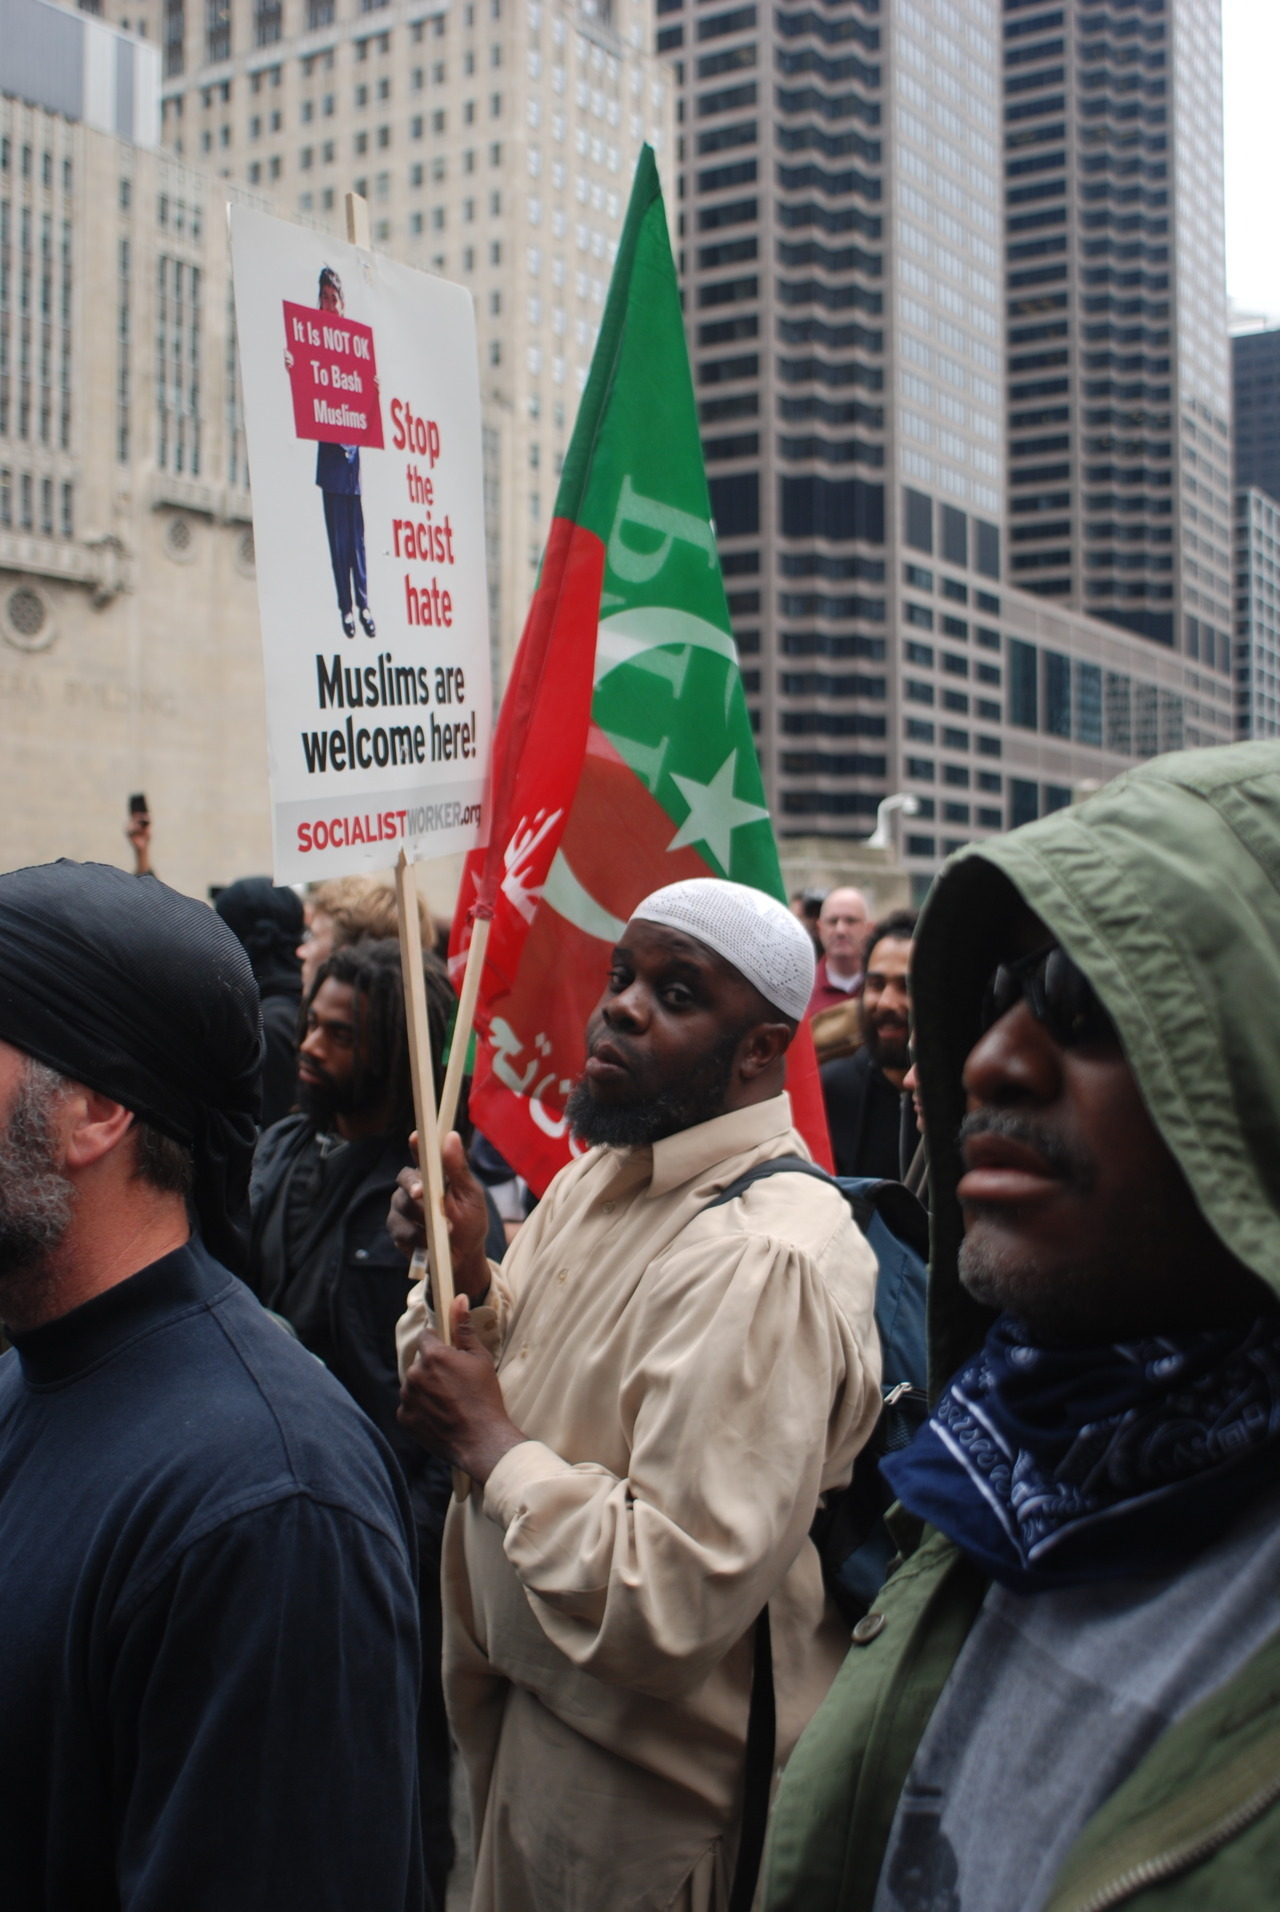 Here are some of the photos I took during the NATO protests in Chicago.  One of the things that really interested me was the media's focus on a subset of the protesters: people who looked out of the mainstream, or who seemed threatening.  For example, I watched the guy in clown make up, Casper, get interviewed by no less than four media outlets, both print and TV.  The nice old lady protester, Nan, on the other hand was interviewed by public radio and some journalism students.    You would expect that Casper really must have had something important to say, but he was just some young kid, who rightly has realized that the game is rigged.  He was there because opportunities once available to him and his friends have all but disappeared.  He has also spent much of his life watching his country be engaged in a perpetual state of war.  He wanted to speak out, to do SOMETHING.  He was all heart, but frankly lacked the life experience necessary to inform 'outsiders' about his cause, or even the reason for his makeup. After Listening to Nan's interview with the journalism students, I sat down and talked with her for a while.  I was captivated.  Her presence alone was inspiring, but even more amazing was the fact that she traveled from Oregon to take part in the protests.  She spoke to anyone who approached her and was able to describe in very simple terms why everyone (making less than 300k per year) would be foolish not to participate in this movement.  I was honored to have met her and truly inspired by her commitment. It is a sad commentary on the state of the press that such an inspirational figure isn't newsworthy.